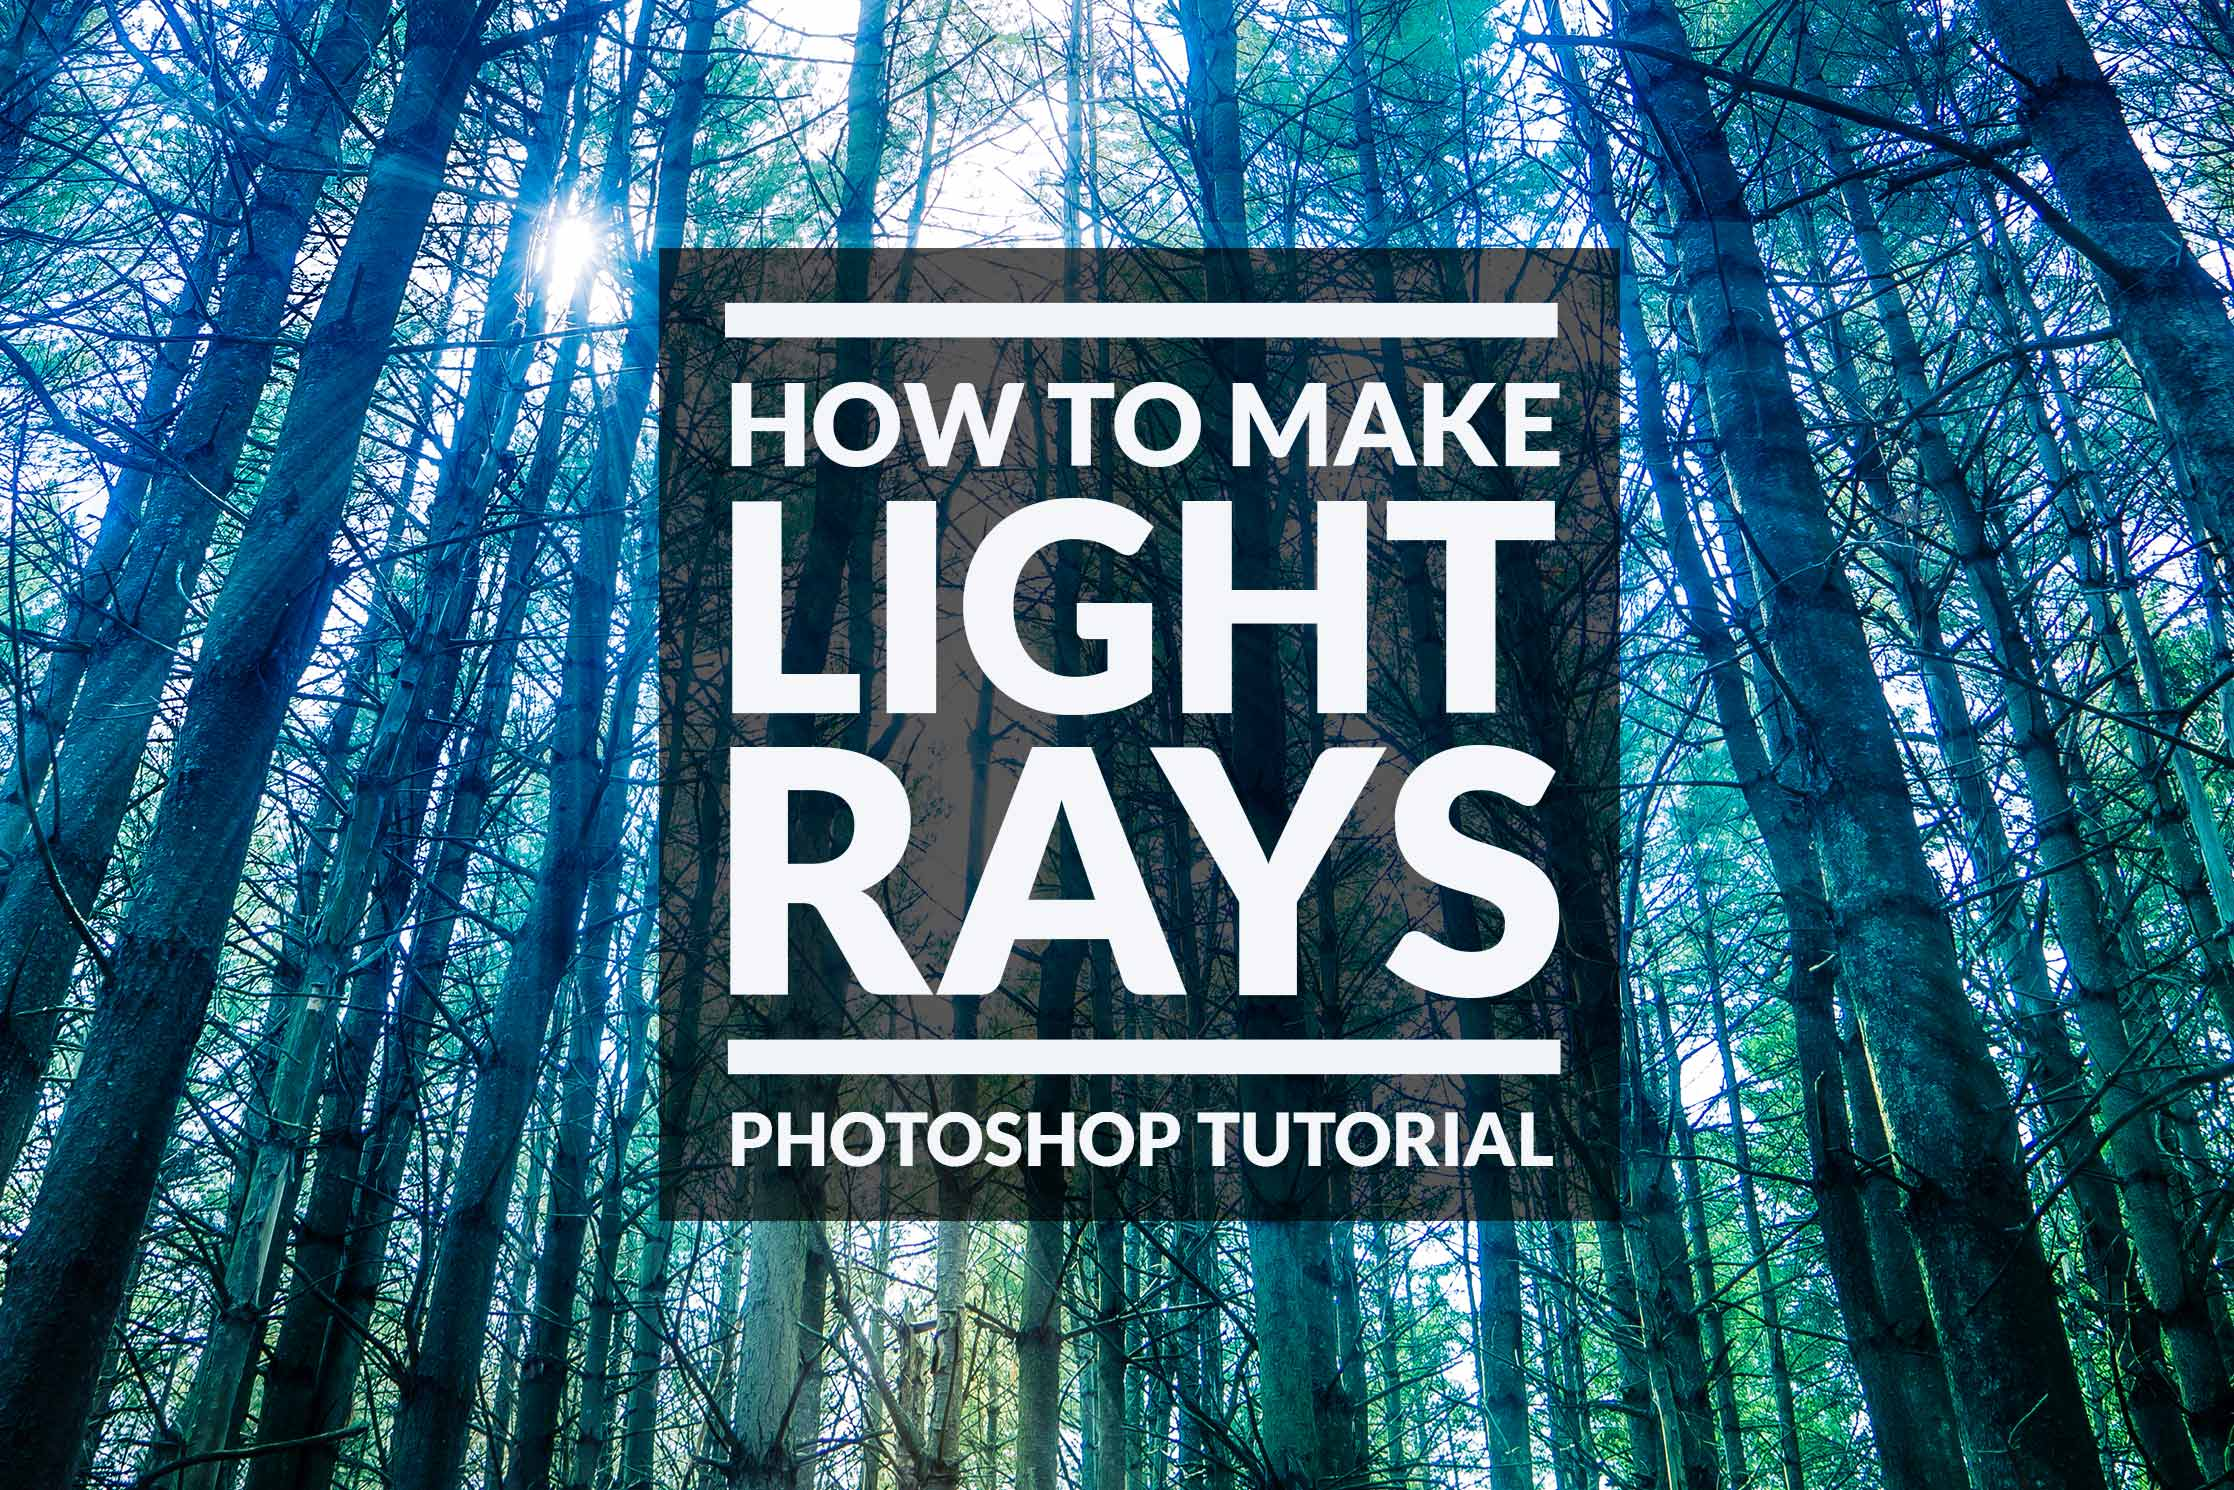 Presetpro  How To Make Light Rays In Photoshop. Outdoor Christmas Decorations Displays. Christmas Decorations London Shop. Home Christmas Ornaments You Can Make. Christmas Decorating Ideas With Mason Jars. Christmas Decorations Paper Easy. How To Make Christmas Decorations Videos. Etsy Christmas Party Decorations. Cool Christmas Paper Decorations To Make